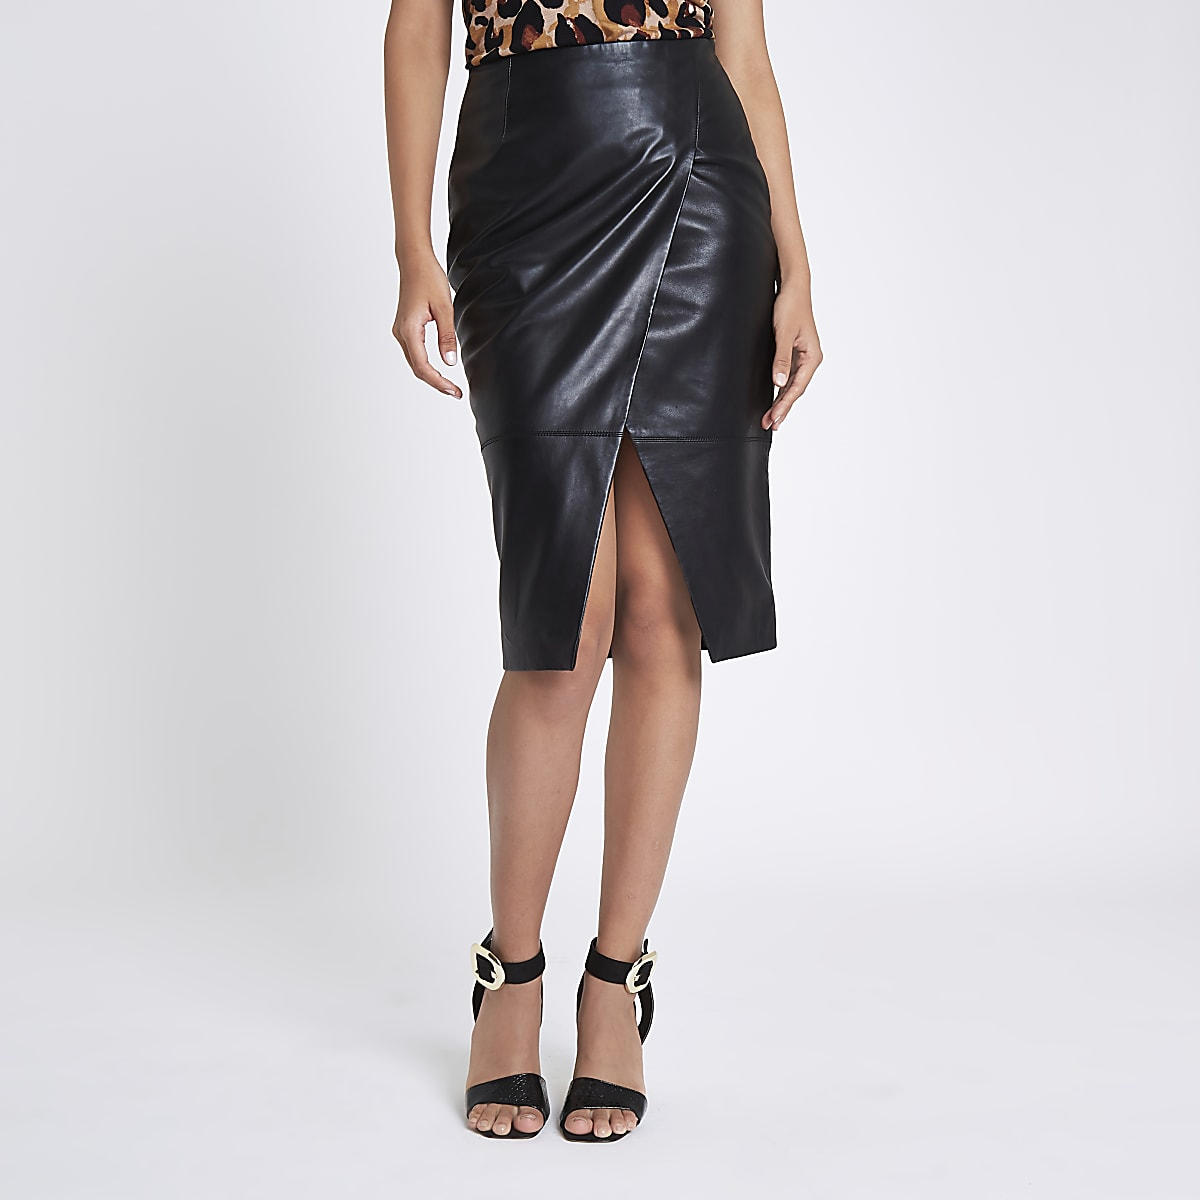 Black leather wrap pencil skirt